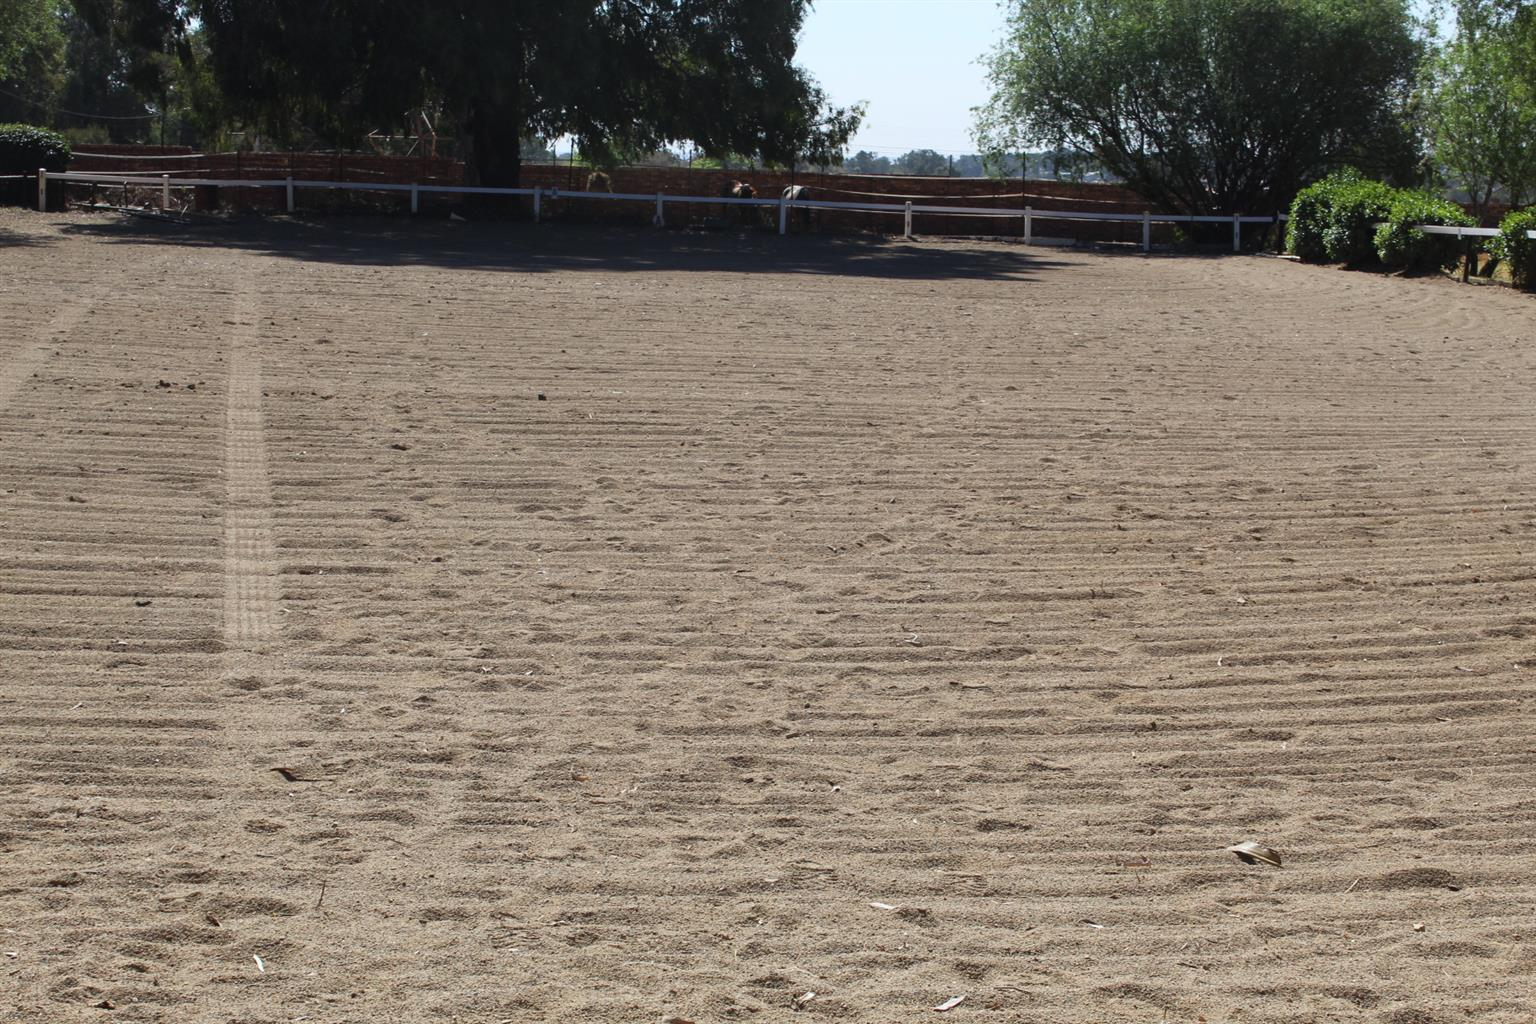 BENONI-ON 4.2 Ha-A DREAM EQUESTRIAN CENTER-LOVELY RESIDEBCE-40 STABLES....GREAT!!!